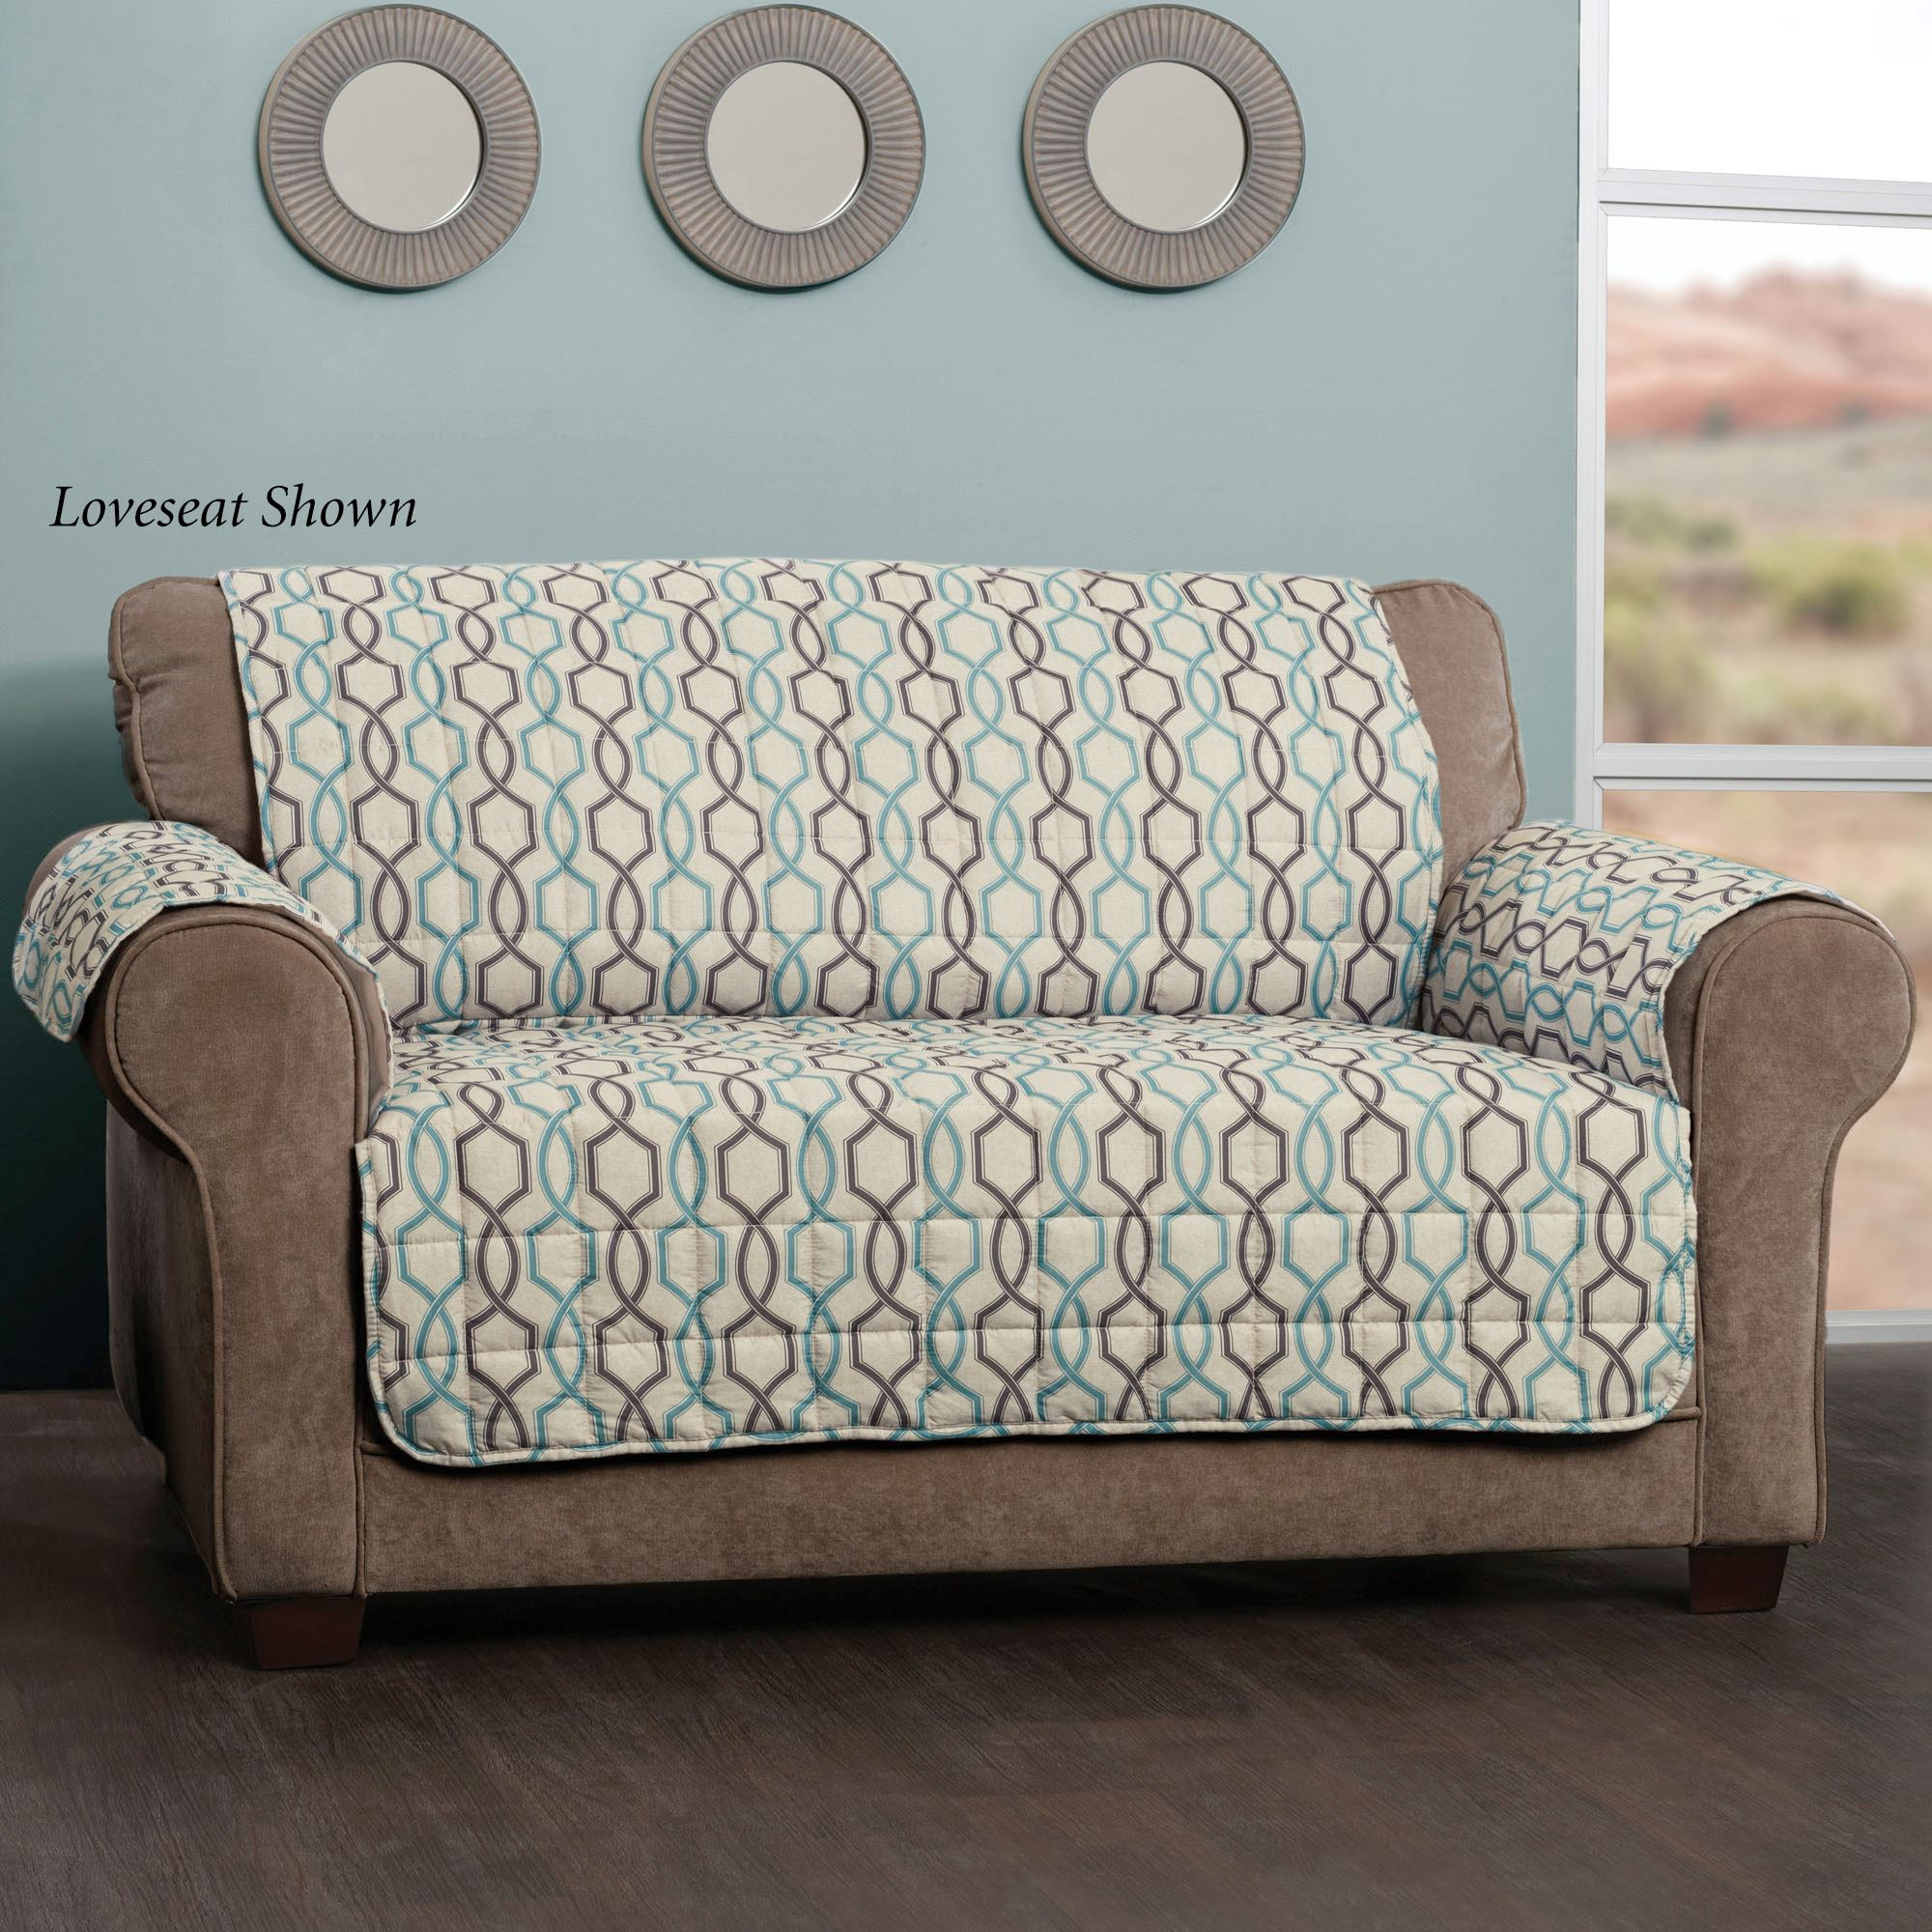 Impulsive Patterned Quilted Furniture Protectors ~ Sofa Furniture Protectors